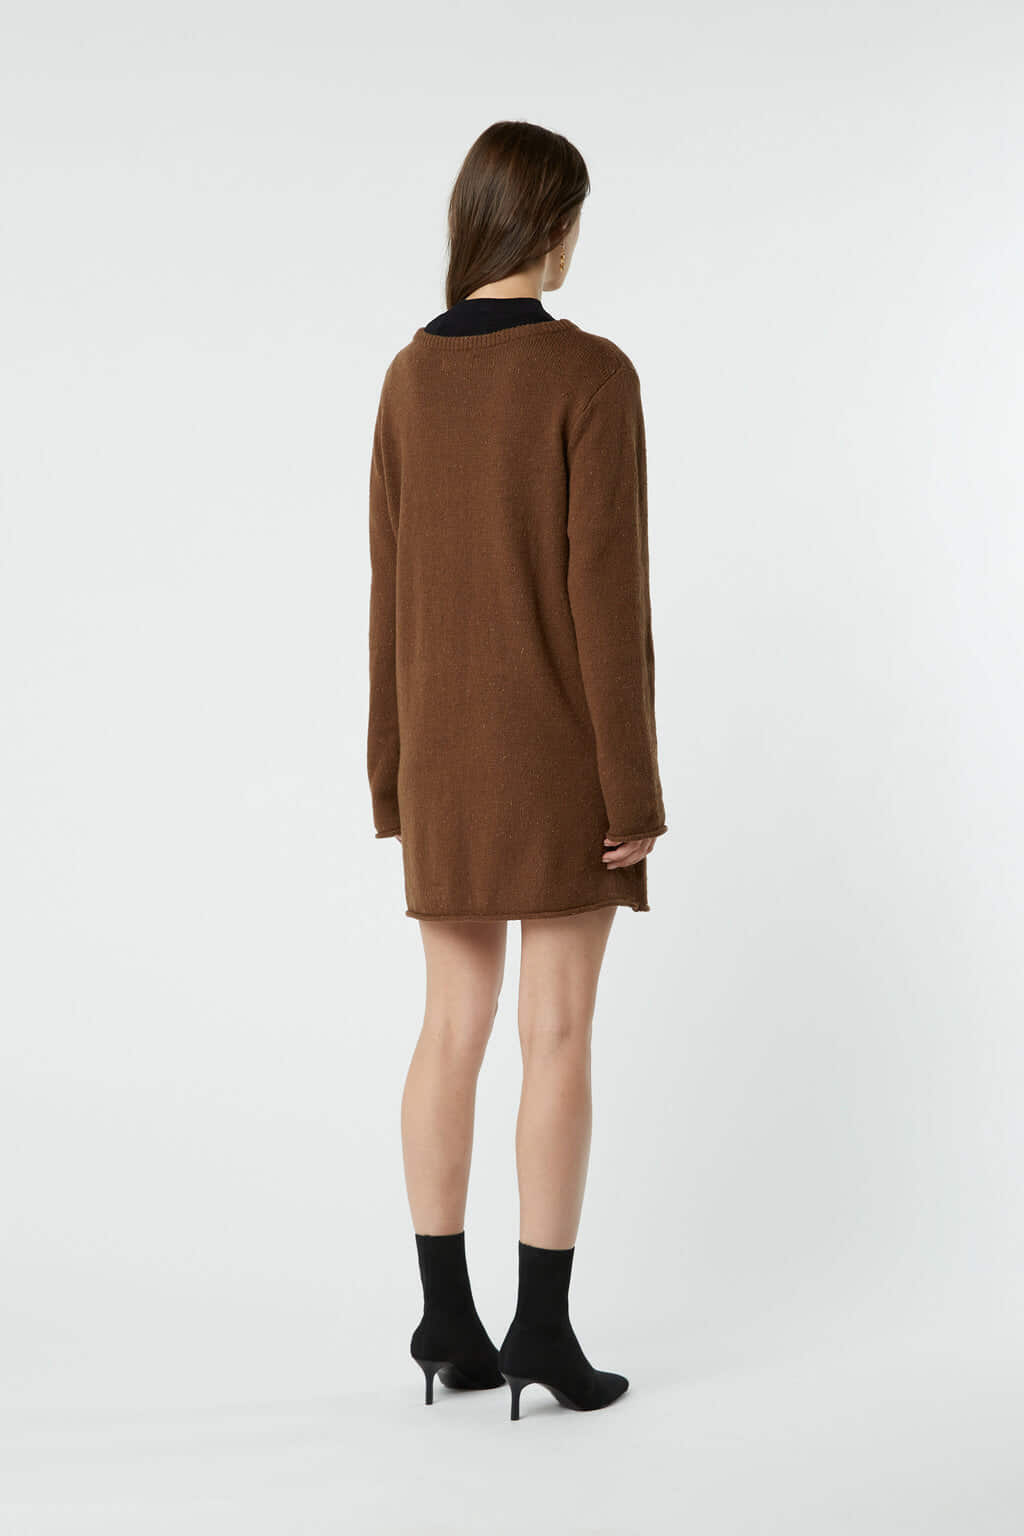 Sweater 2864 Camel 4